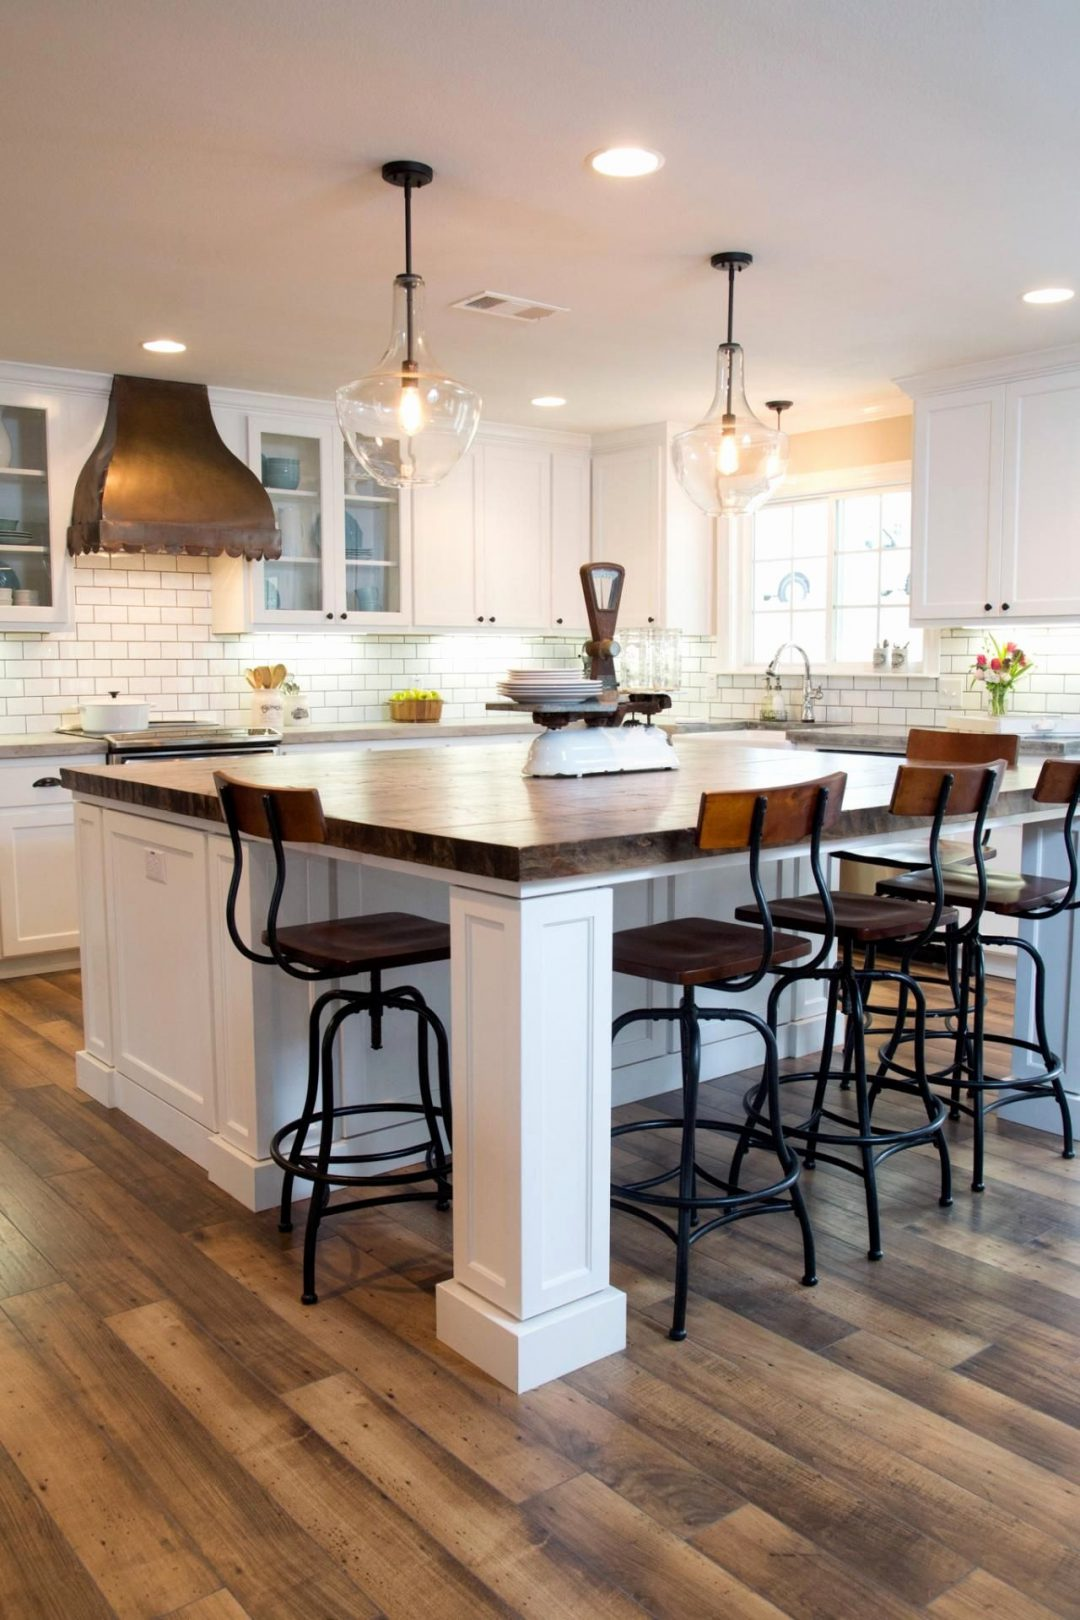 kitchen island tables Luxury Life Is Just a Tire Swing A Woodway Texas Fixer Upper